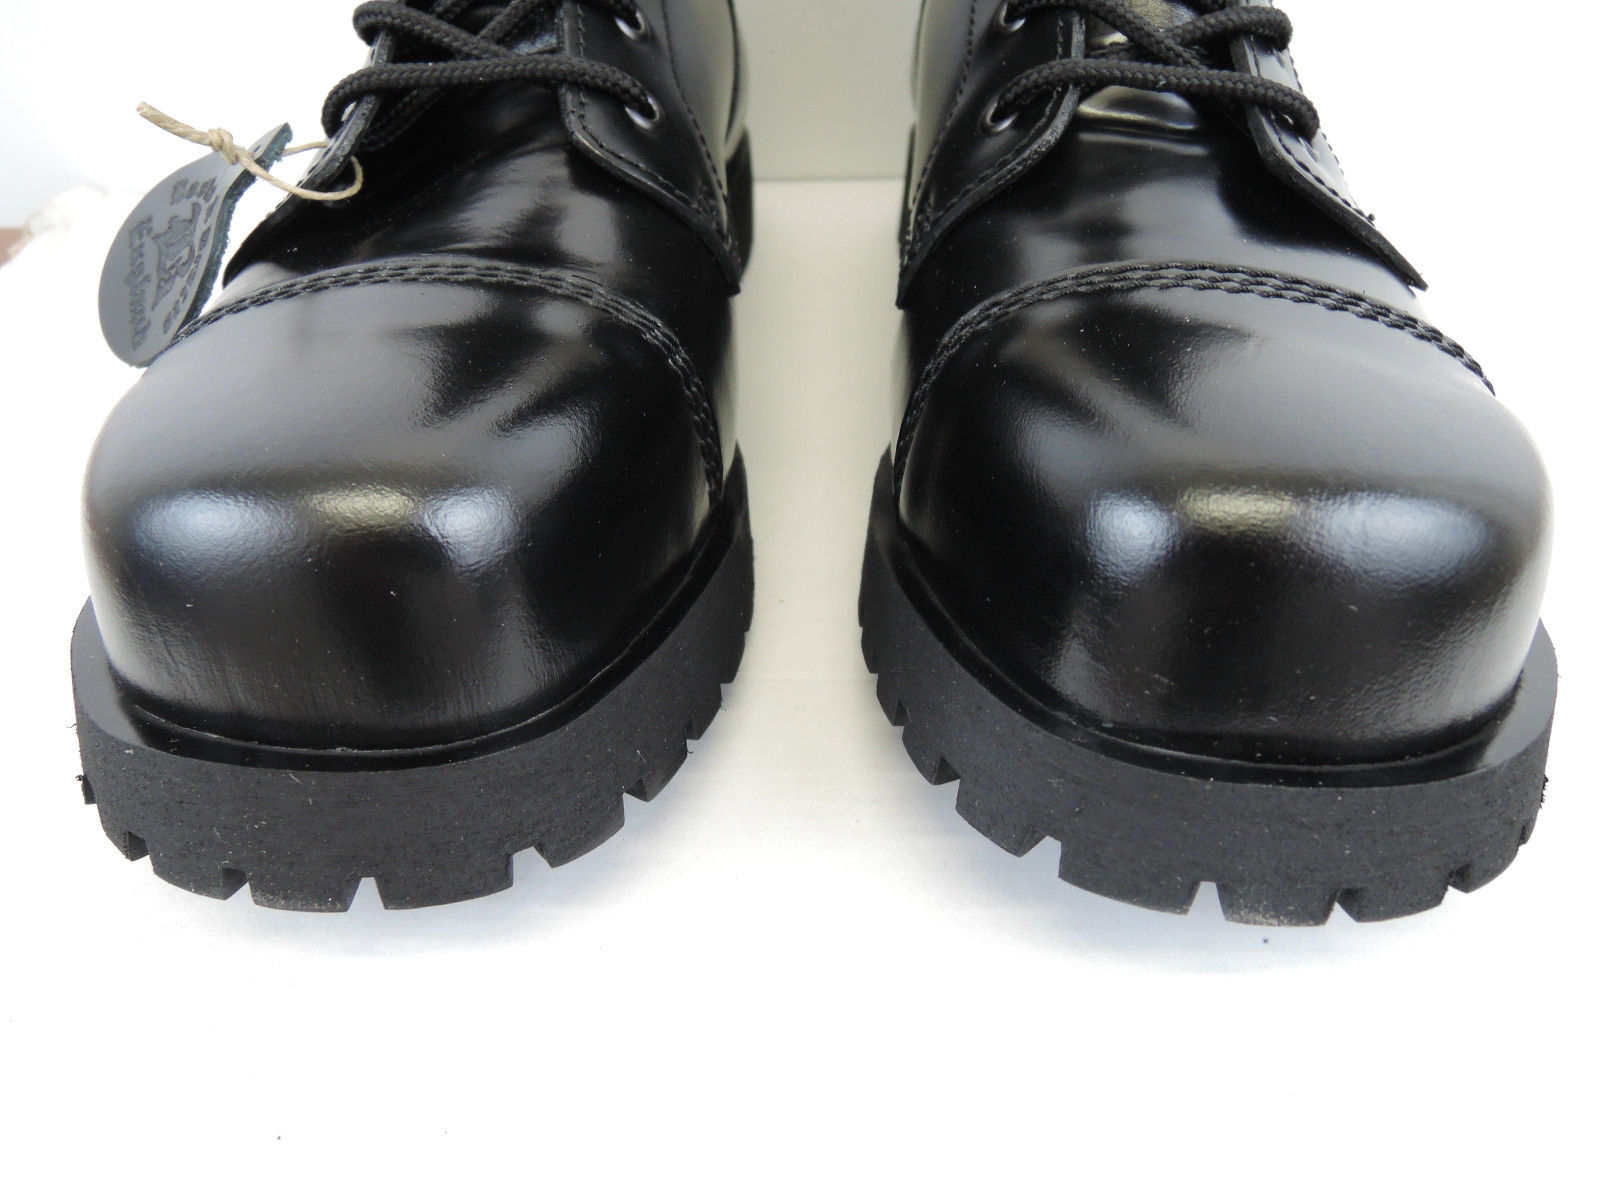 Boots and Braces 10 buchi nero Scontato € 96,00